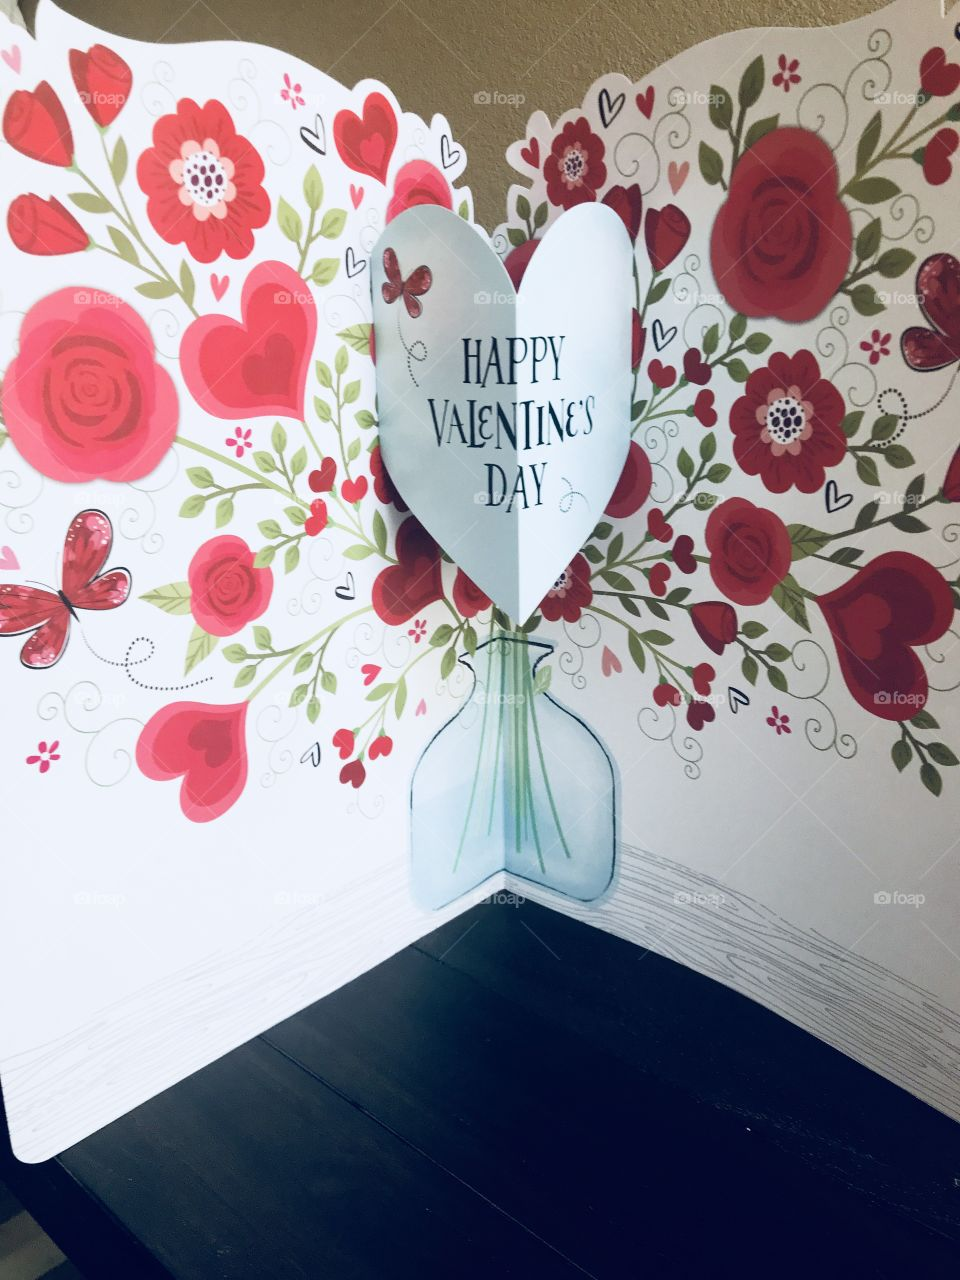 A happy Valentine's Day card with hearts, flowers and roses  celebrating Valentine's Day for your sweetheart. USA, America